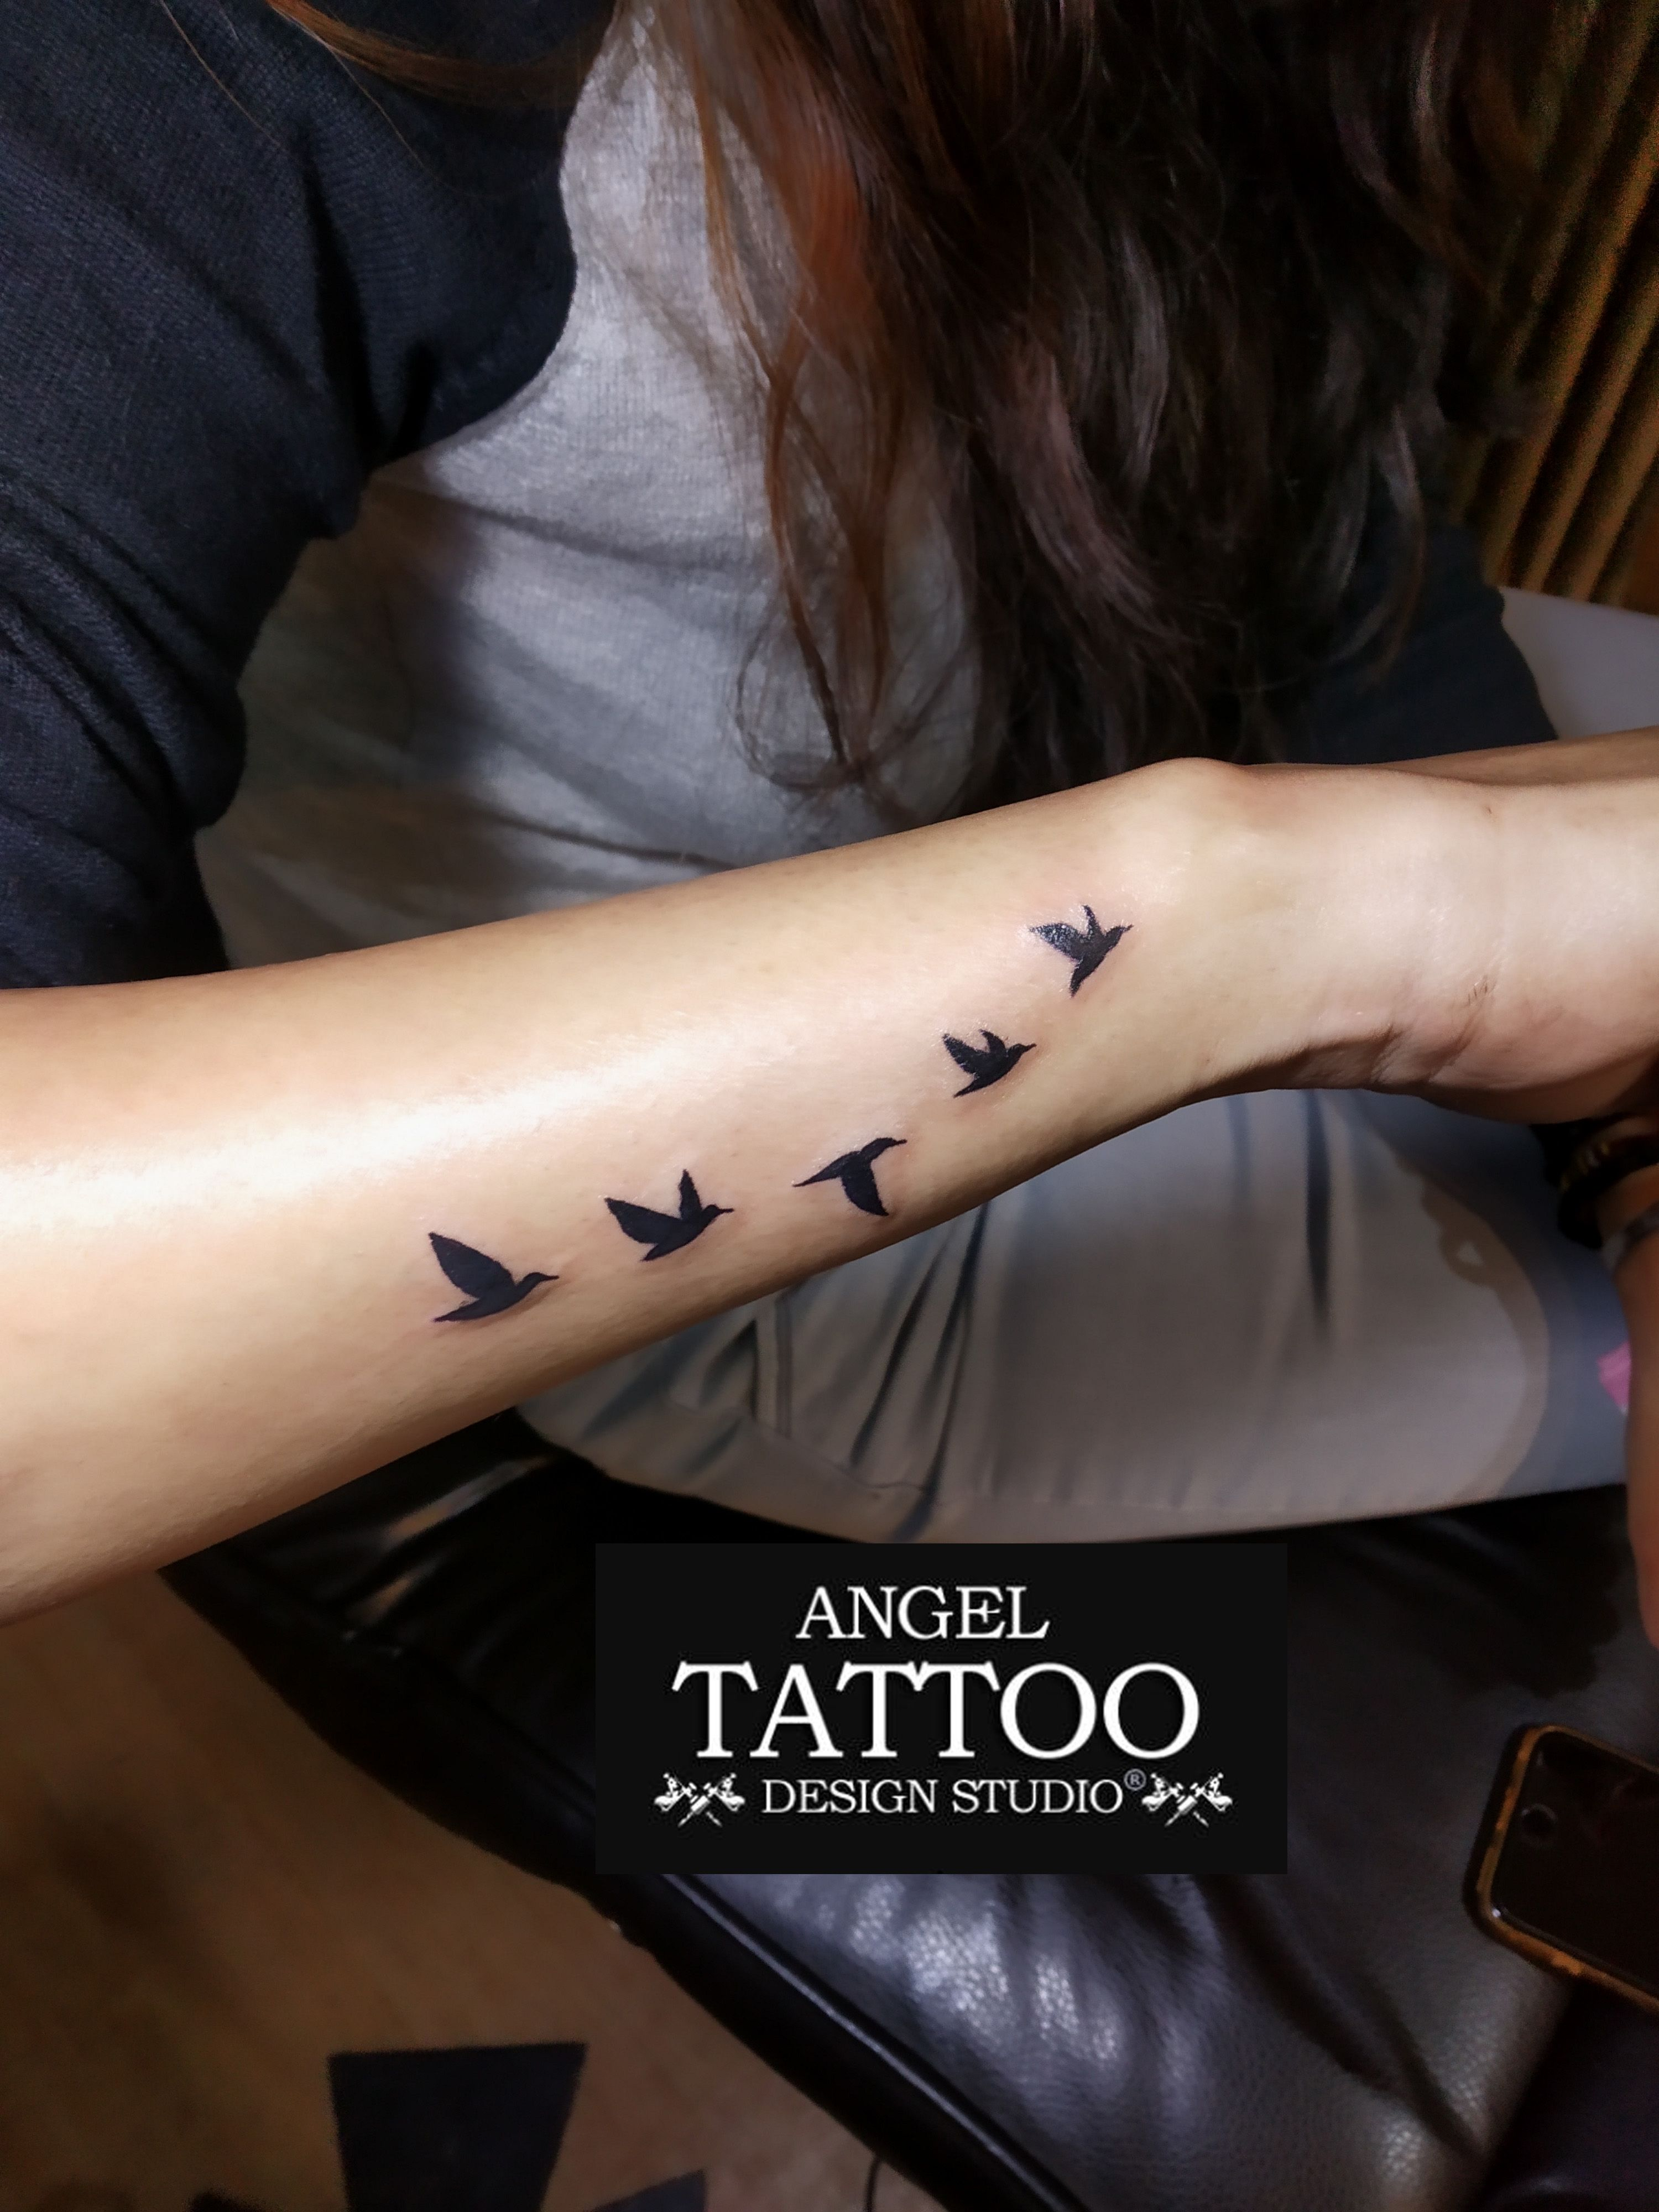 Small Birds Tattoo Made On Wrist At Gurgaon Shop Call 8826602967 For Appointment Smallbirdstattoo Tattooonwrist Birds Tattoo Tattoos Angel Tattoo Designs